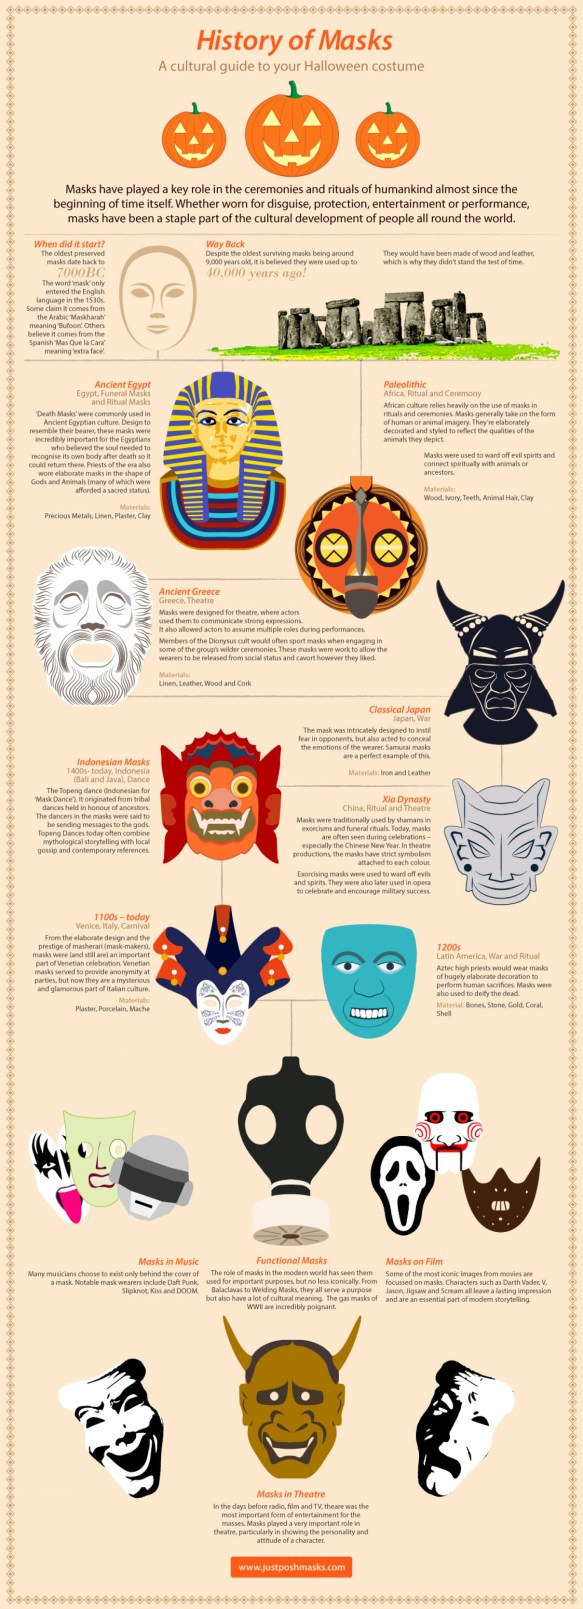 a-history-of-masks-for-halloween_5267dfa85dc27_w1500